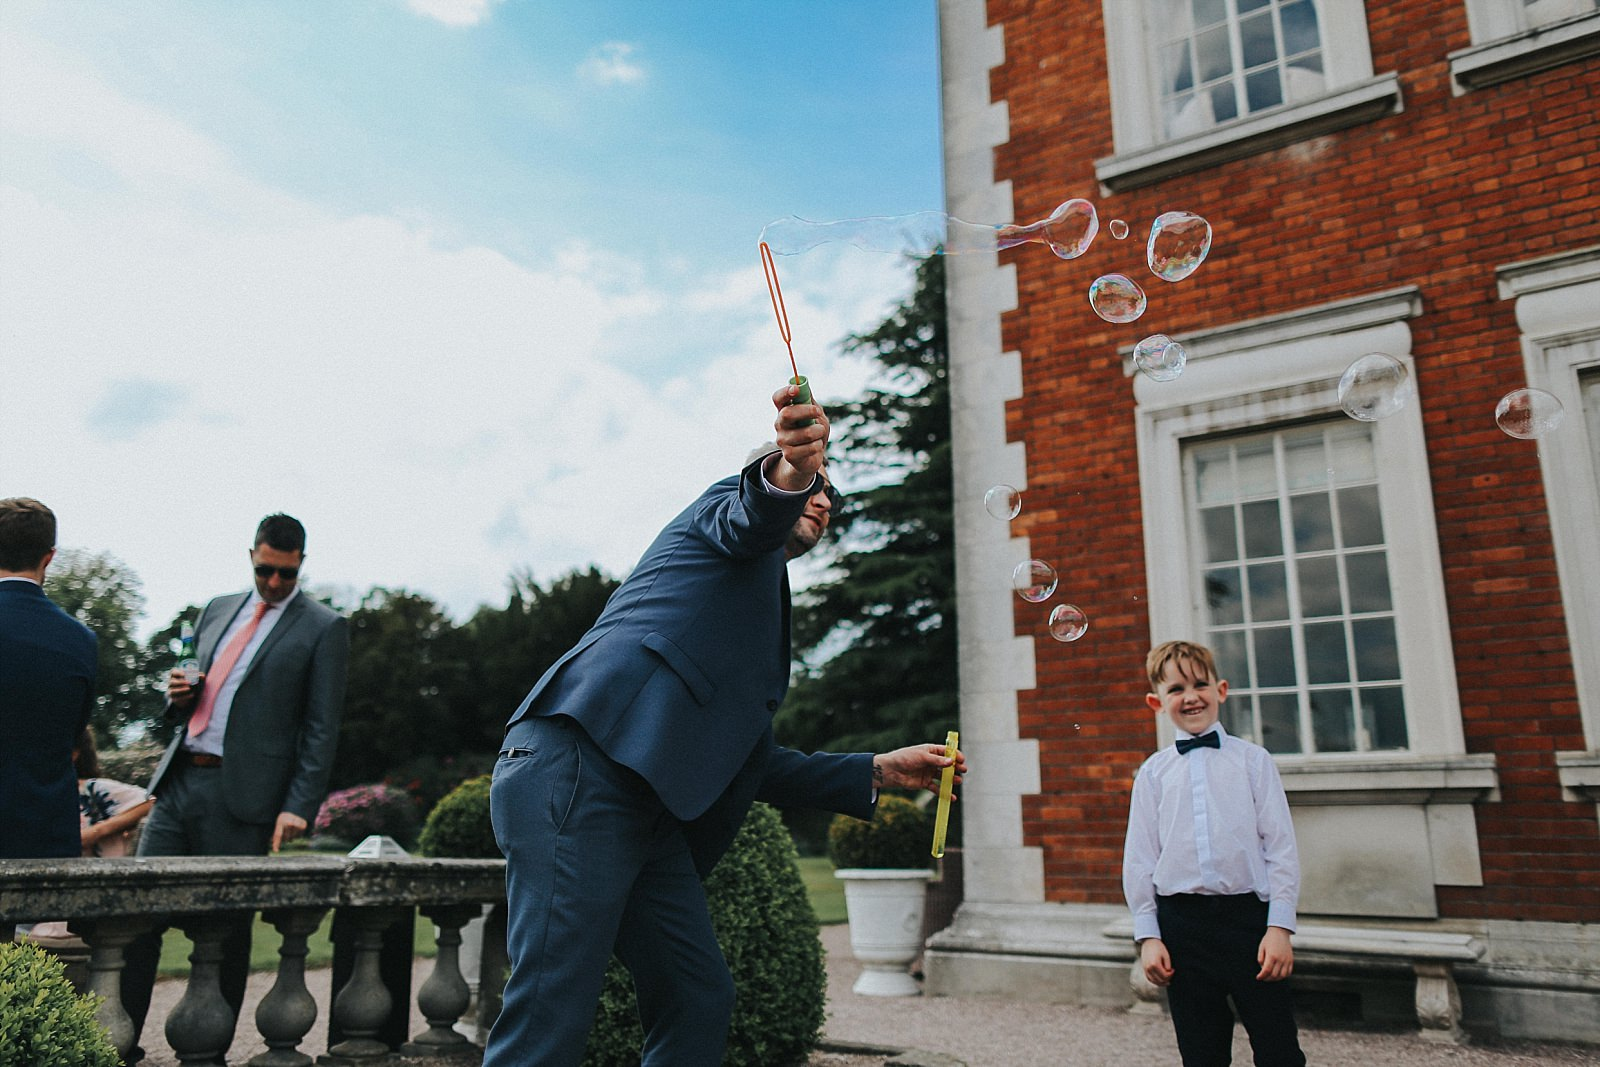 wedding guests have fun with bubbles